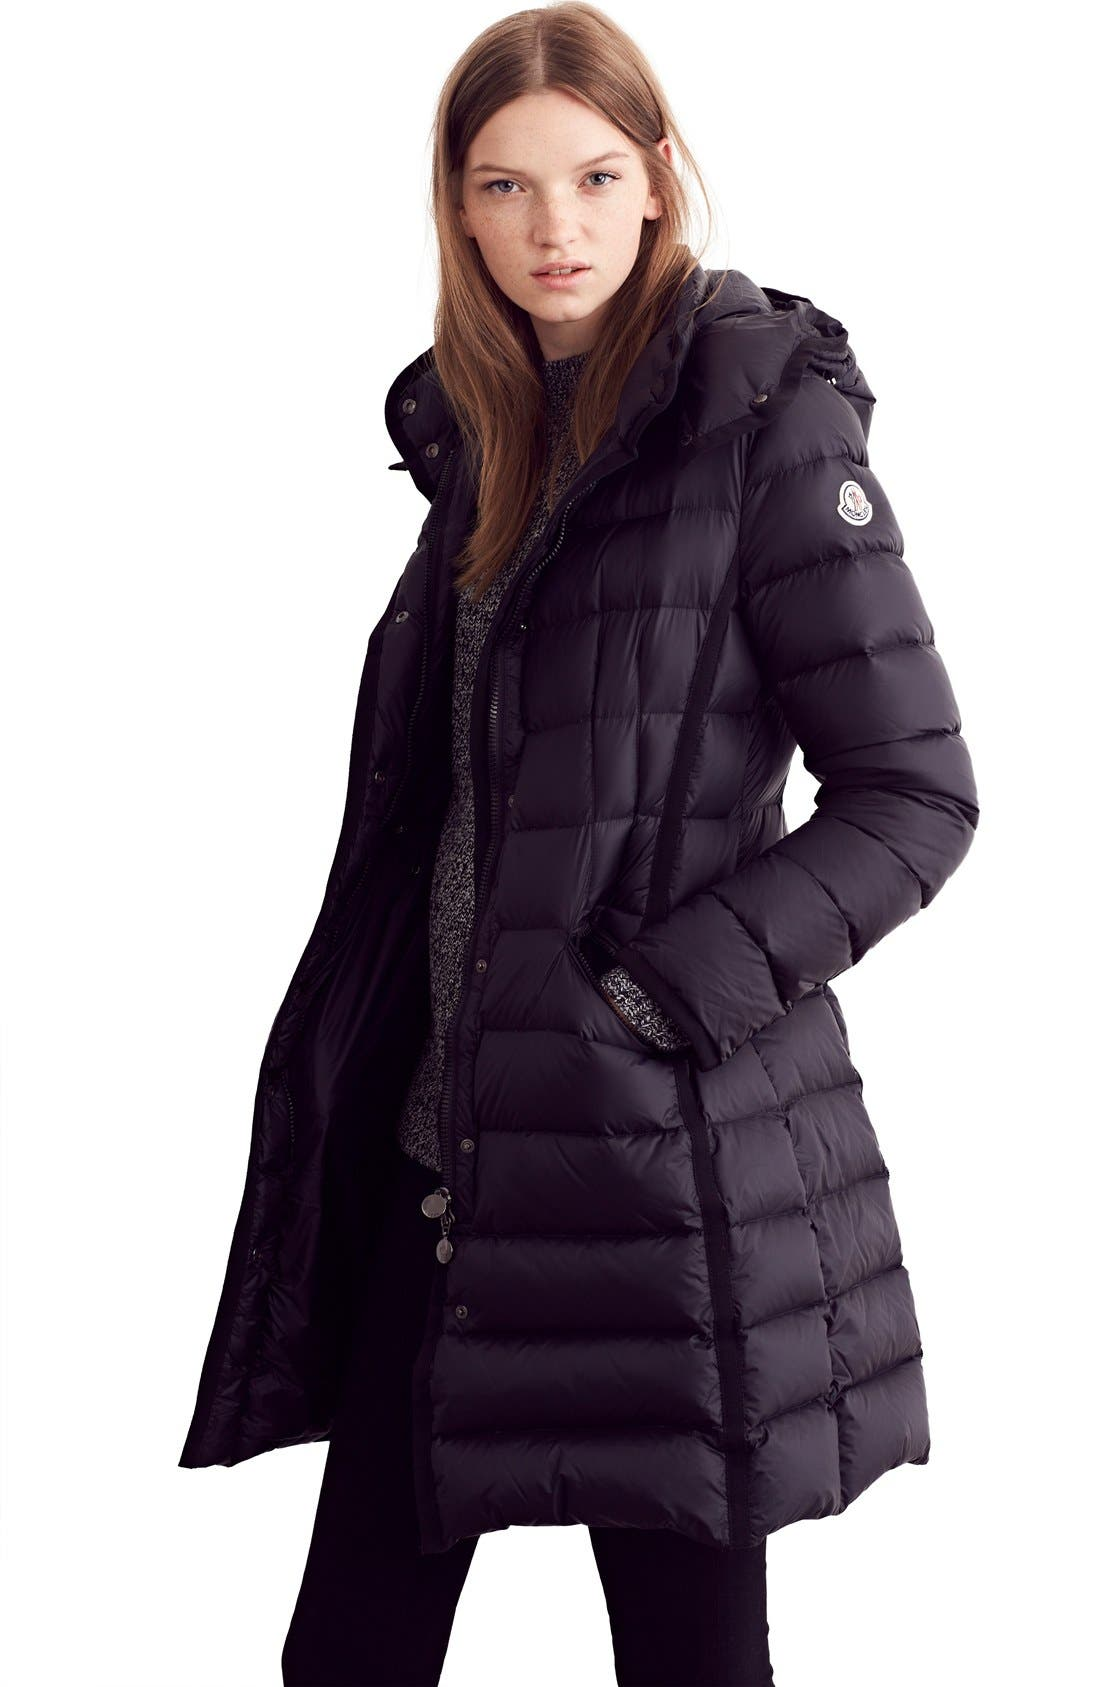 'Hermine' Grosgrain Trim Water Resistant Down Coat,                             Alternate thumbnail 10, color,                             BLACK